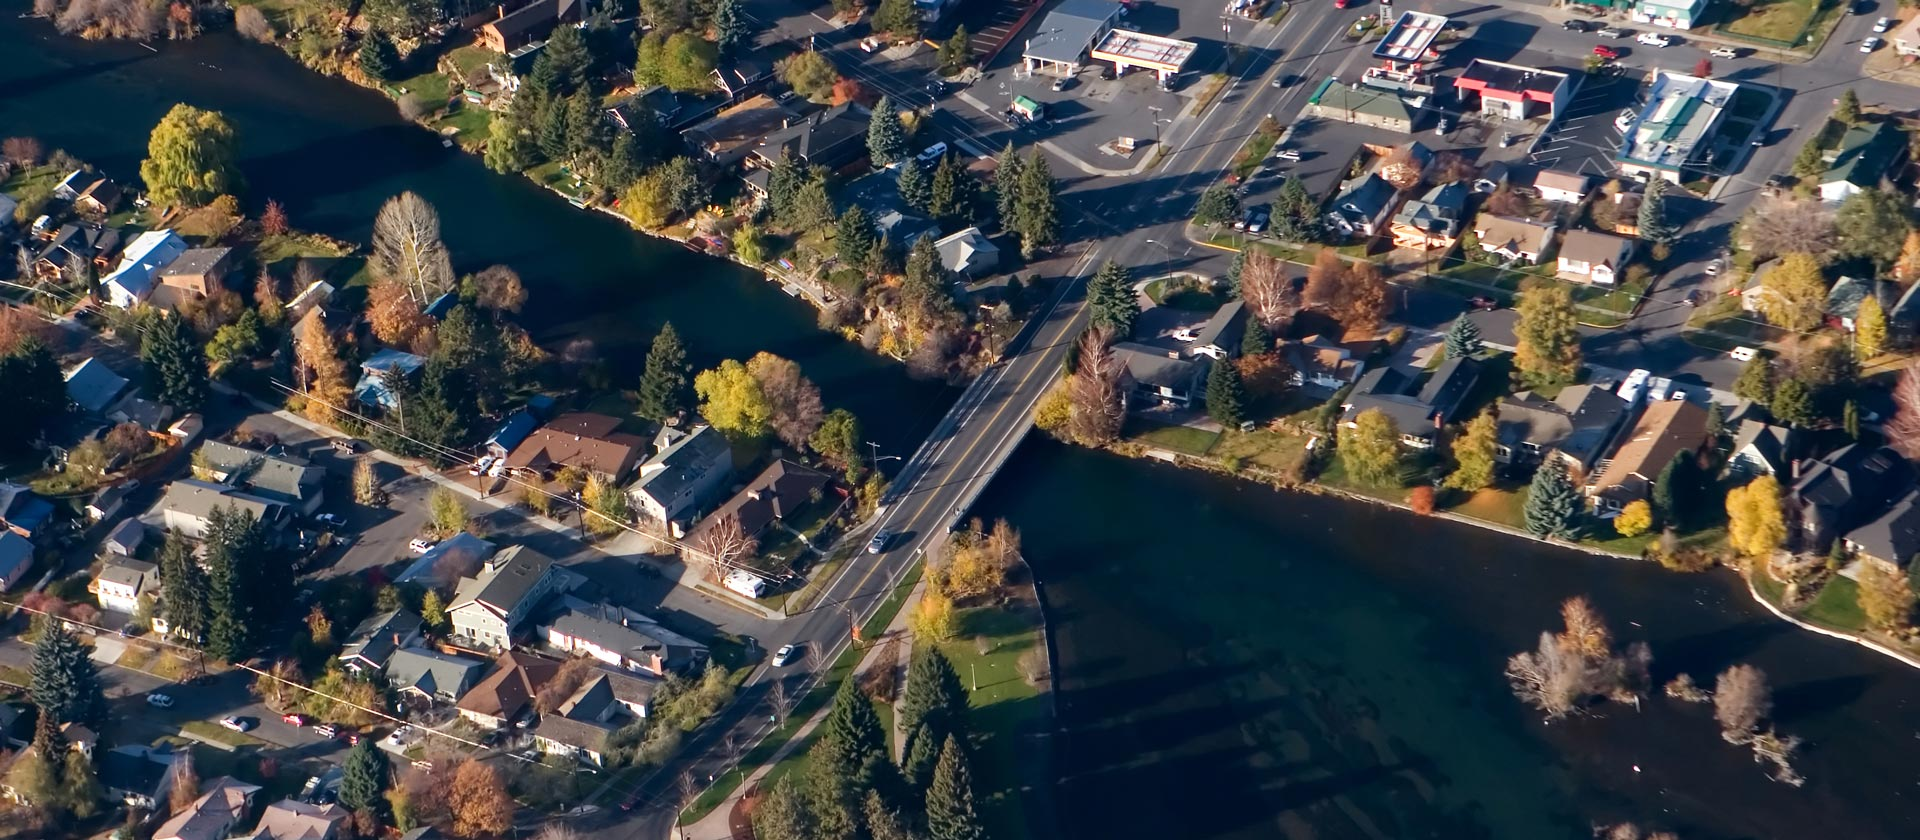 Aerial photo of Bend, focused on the Galveston Avenue bridge as it crosses the Deschutes River.